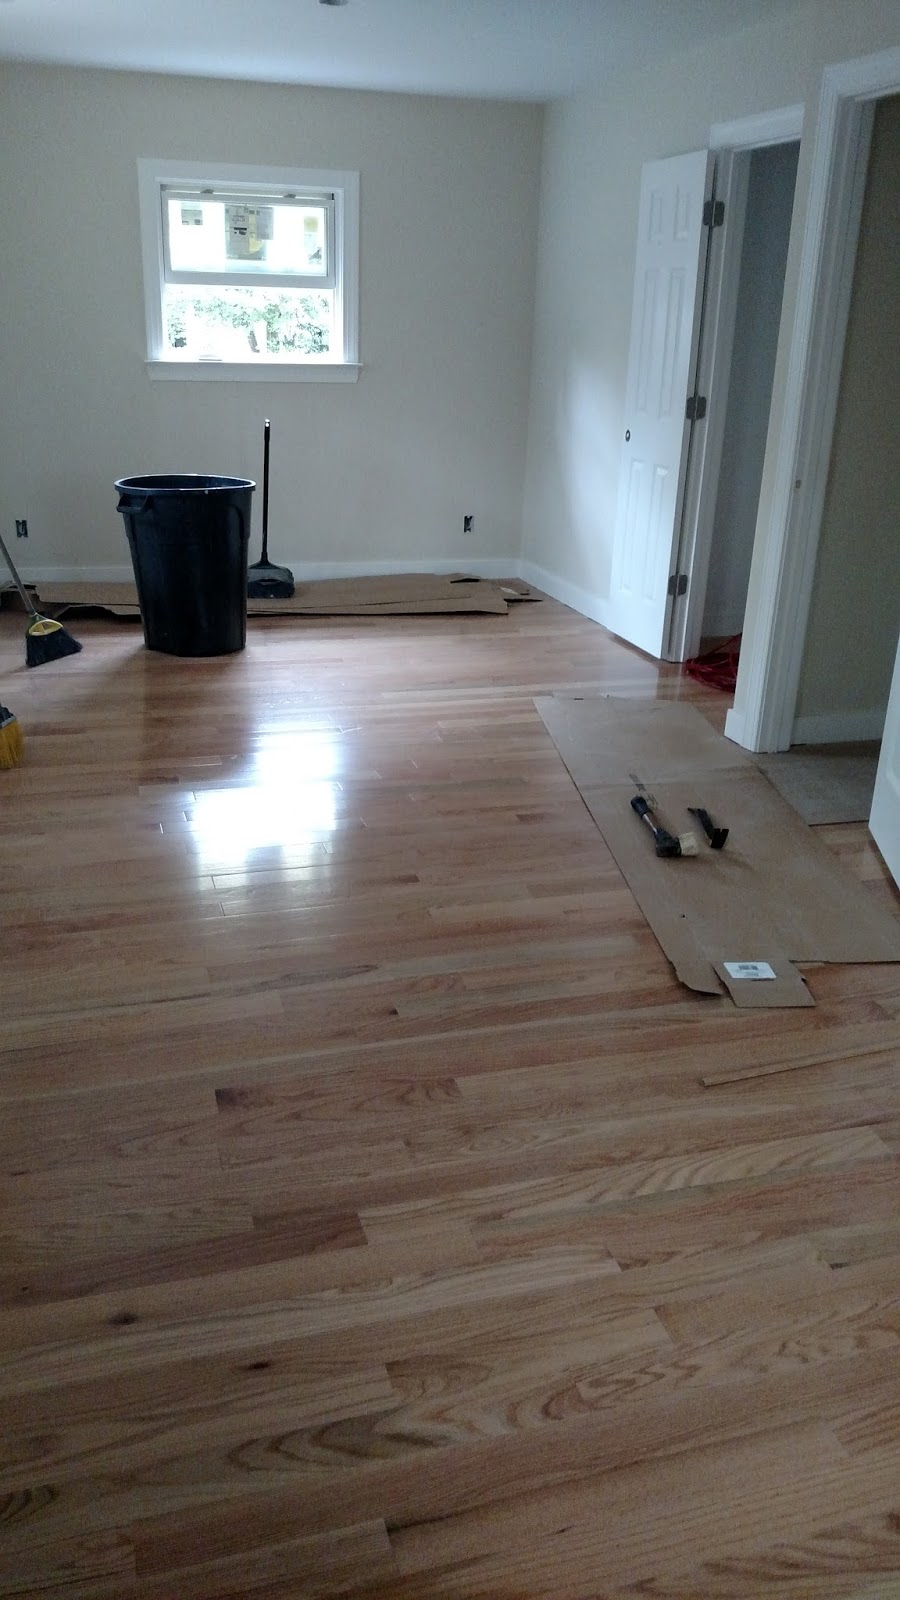 Century Hardwood Flooring room scene With Our Experienced Flooring Installation Technicians A Lifetime Installation Warranty Our Client Is Sure To Enjoy These Products For Many Years To Come